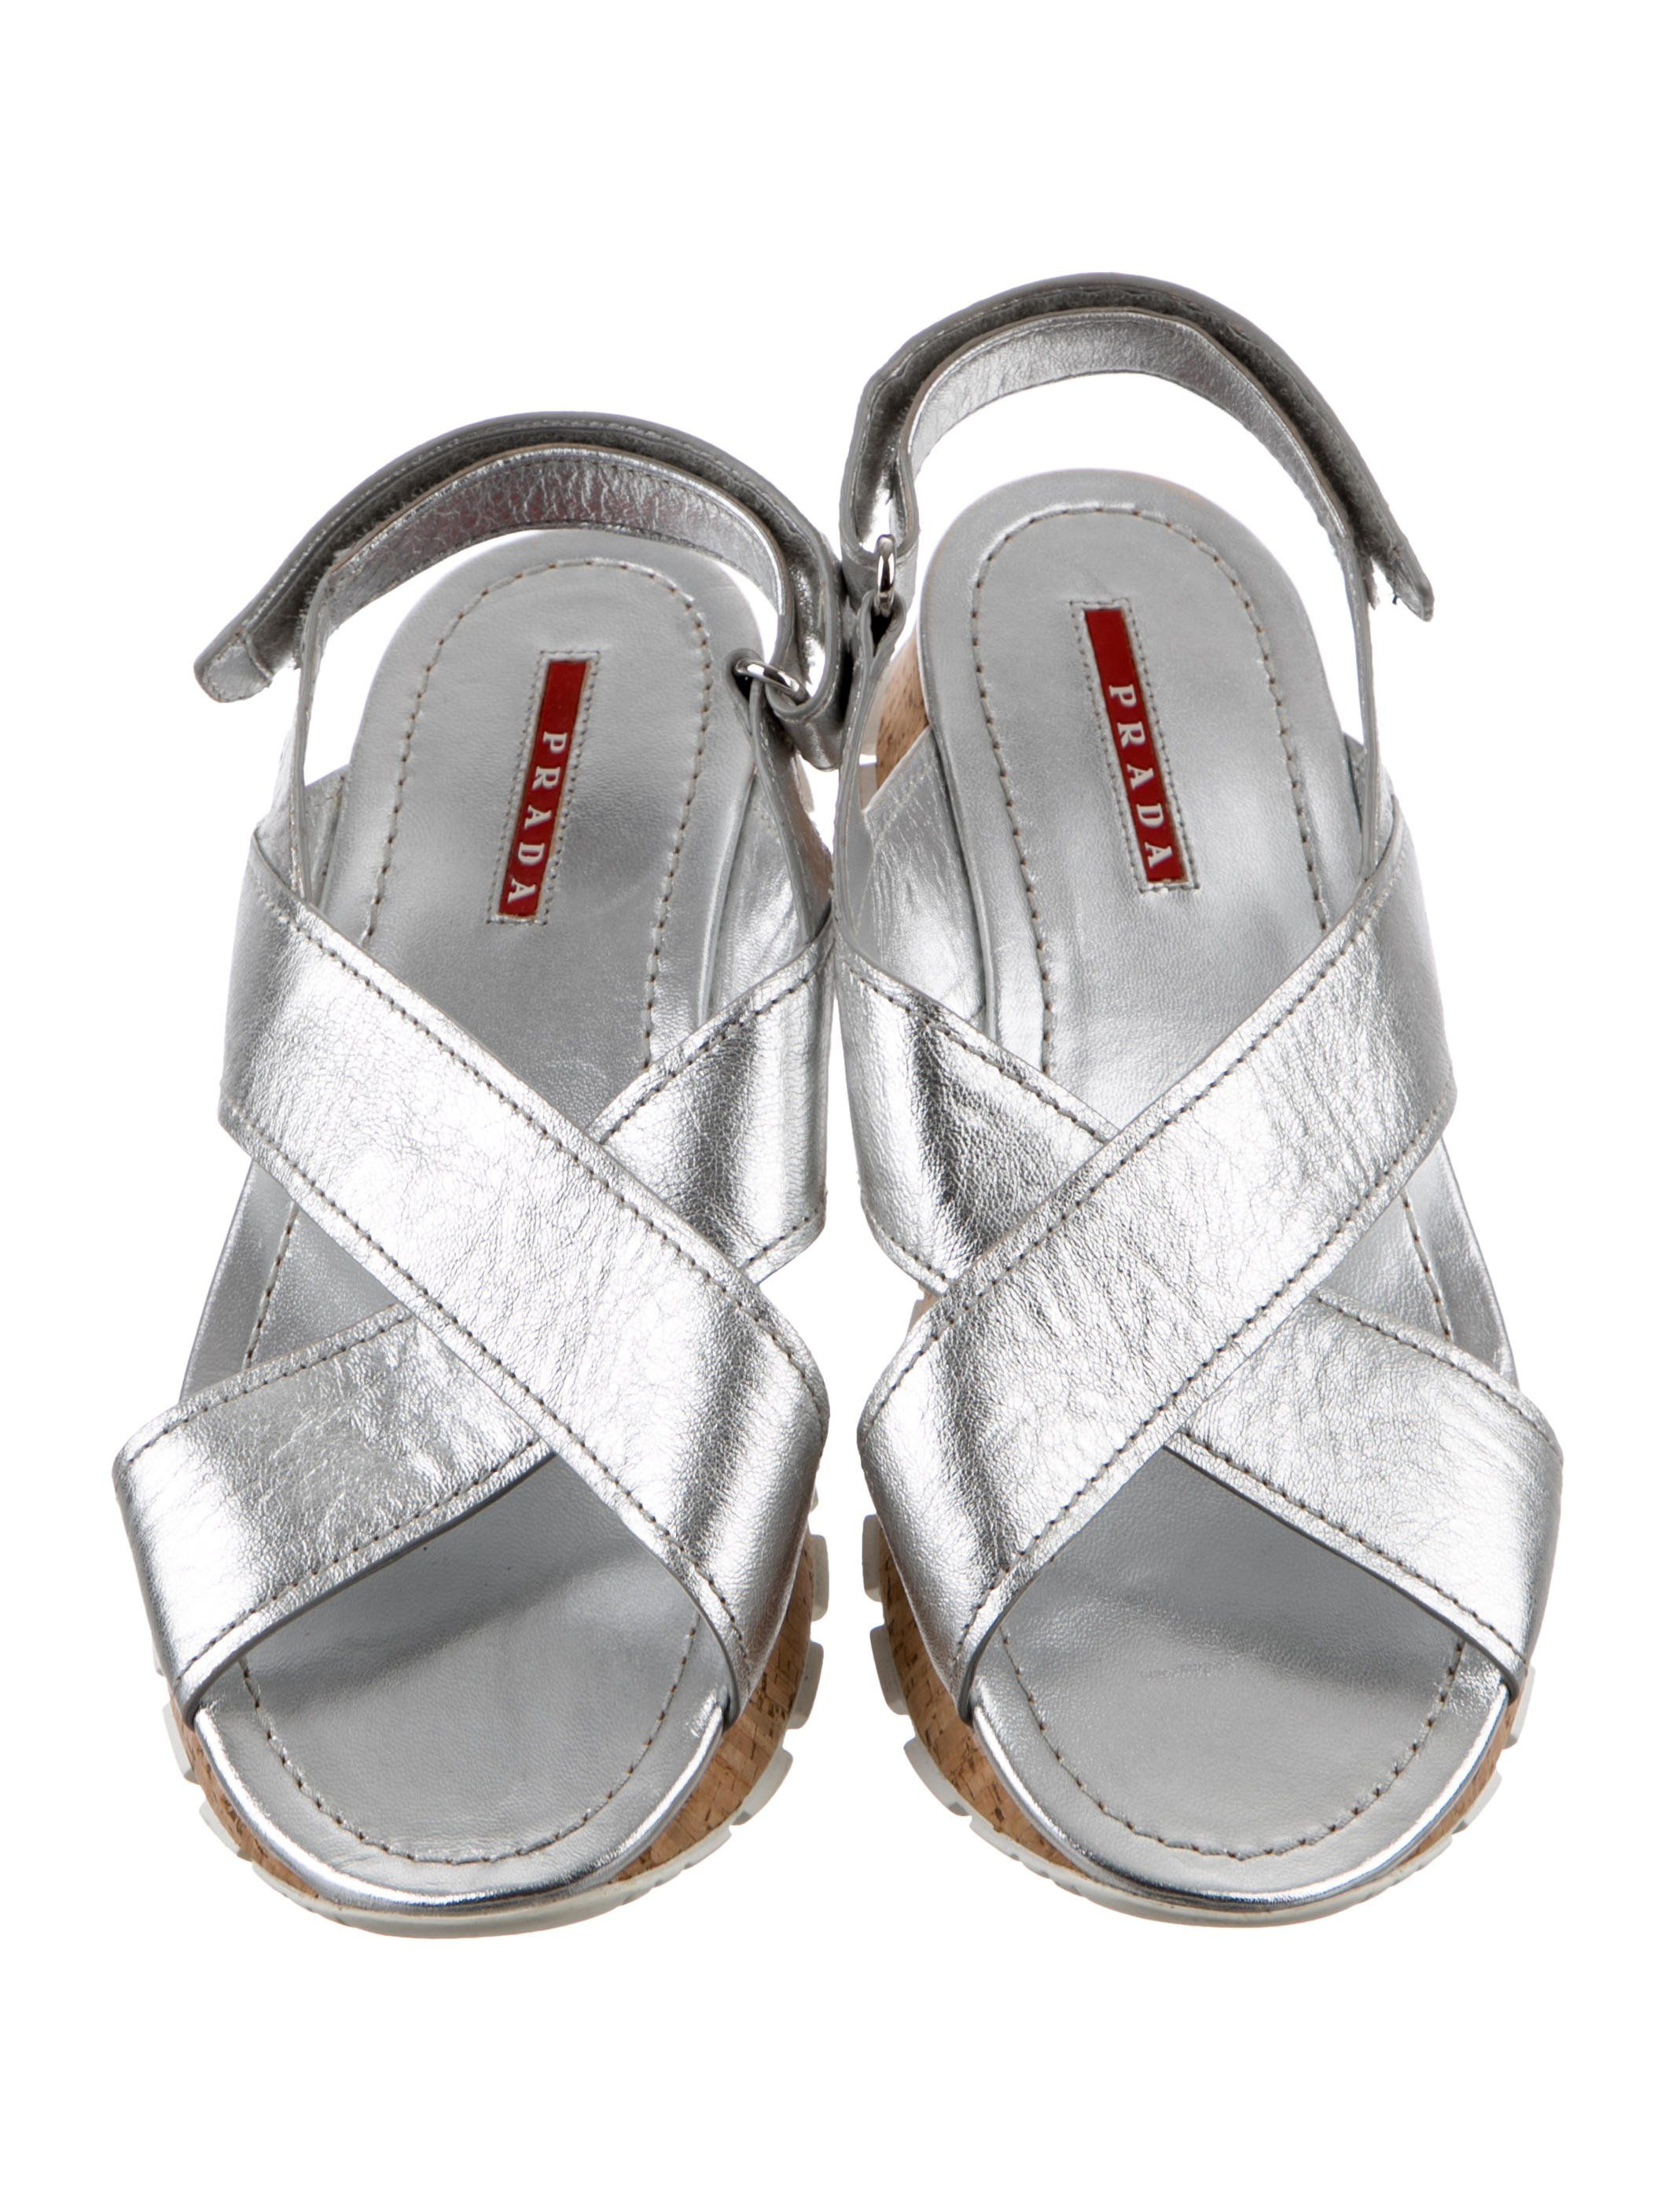 903b996d79 Metallic Crossover Slingback Sandals | Diy furniture in 2019 ...